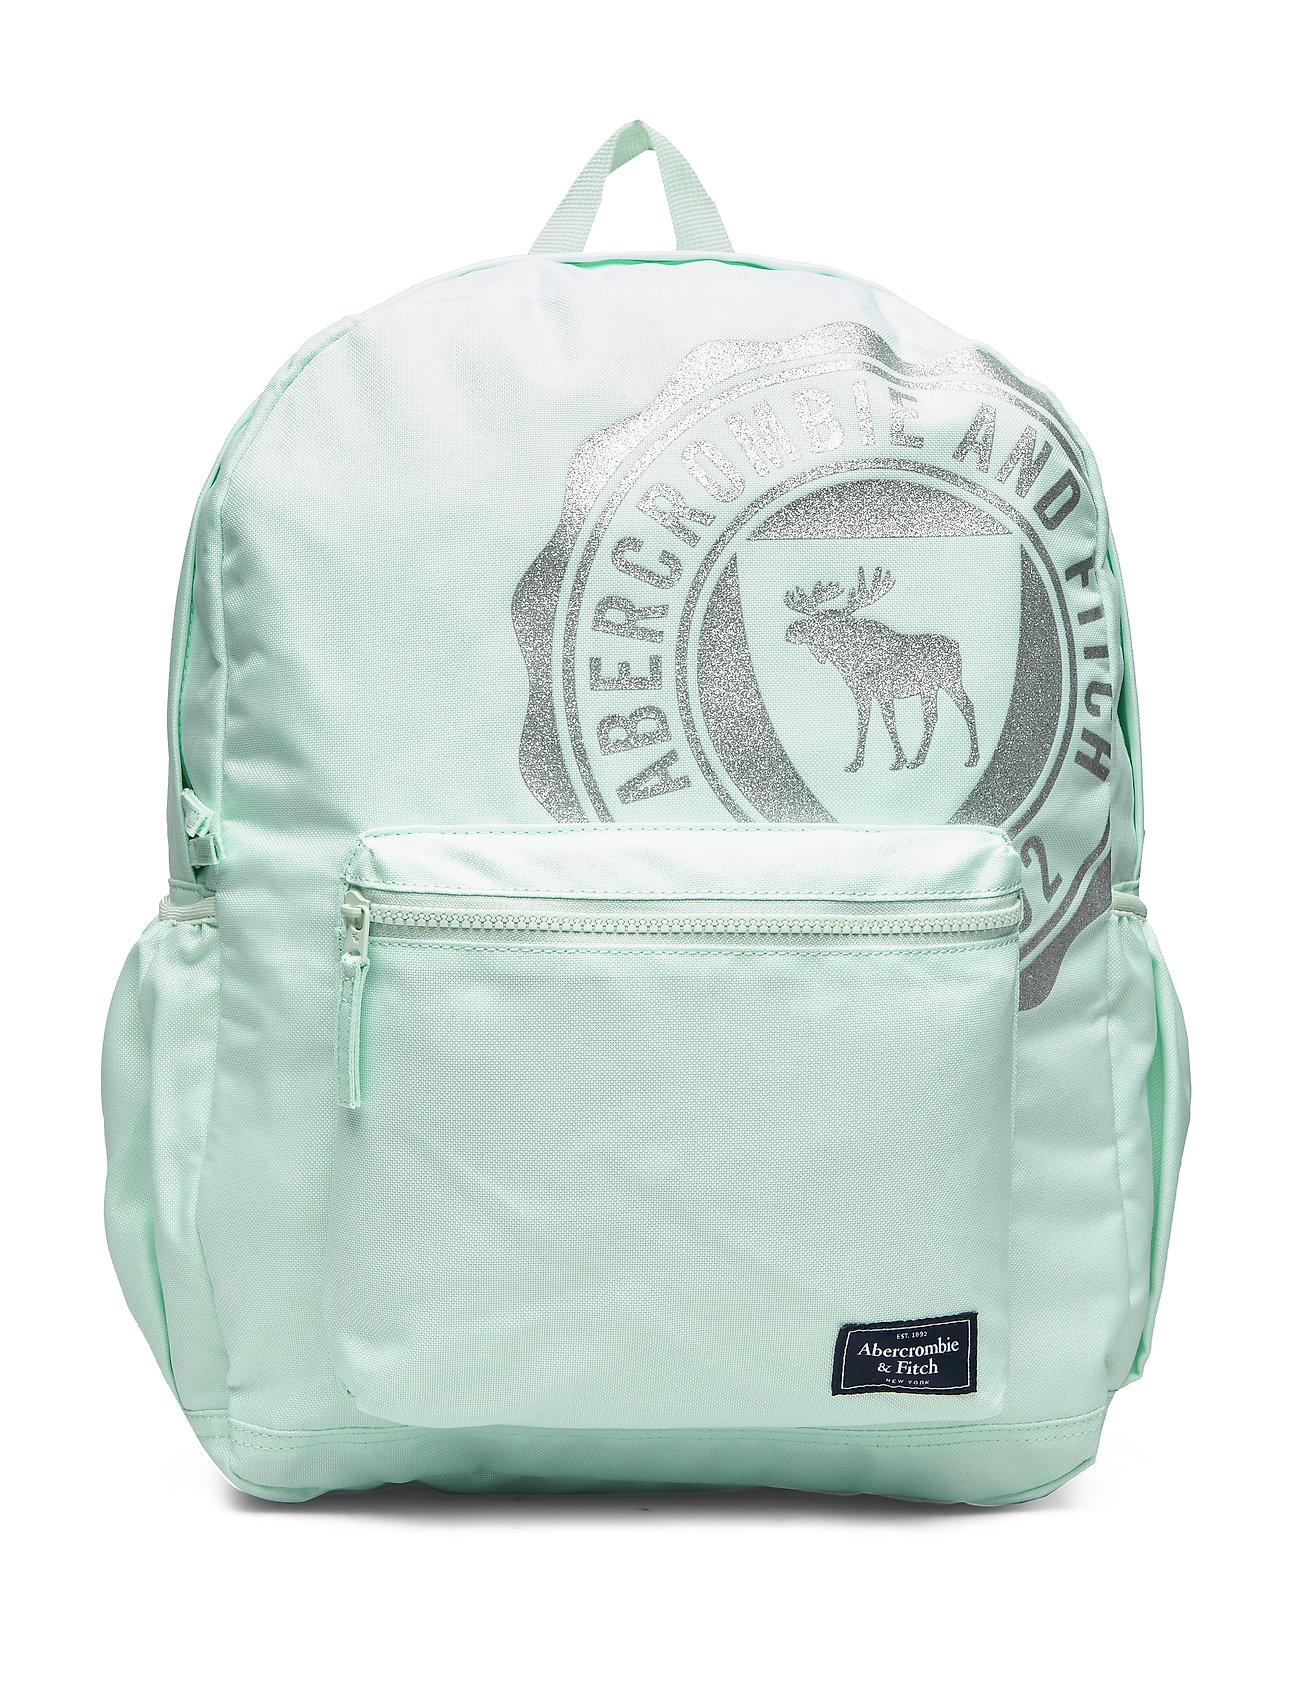 Abercrombie & Fitch Backpack - GREEN